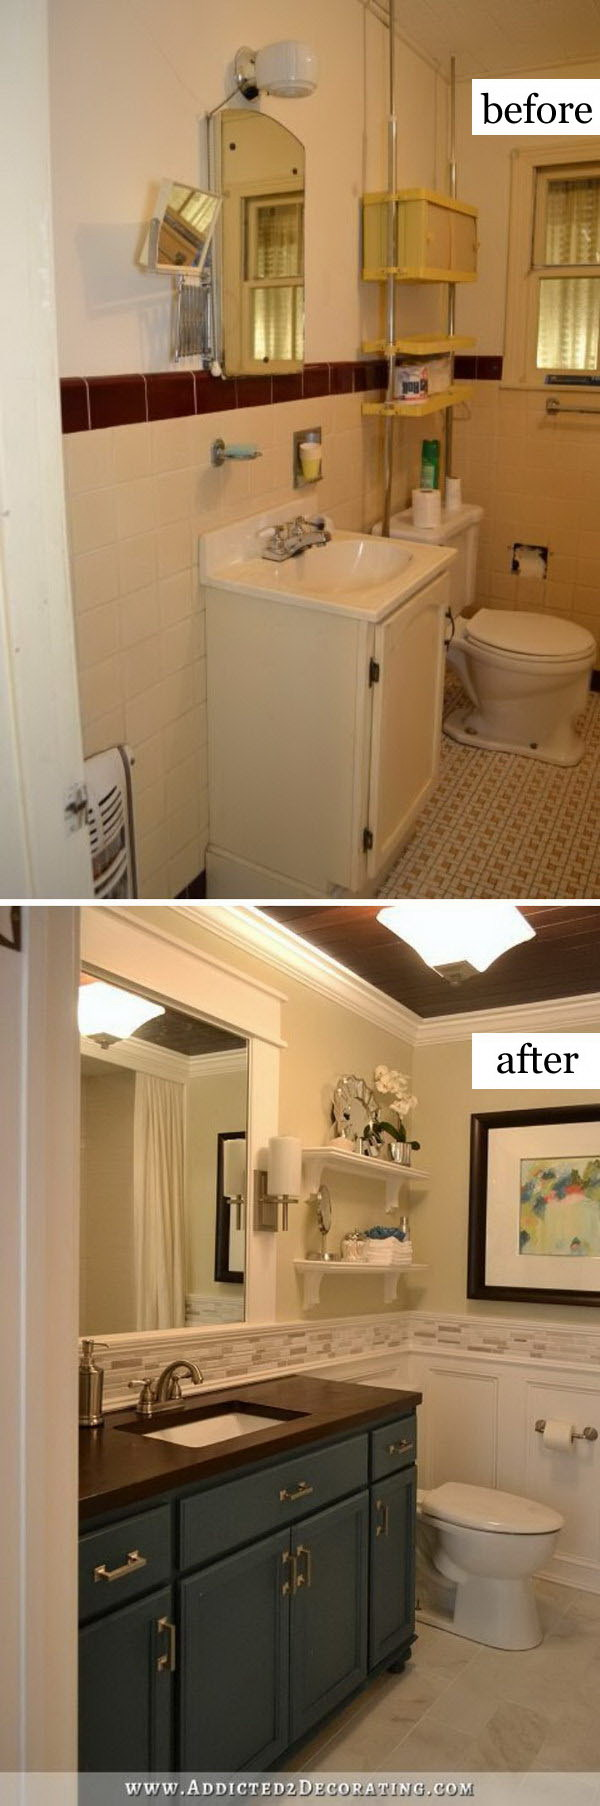 Before and after makeovers 30 awesome bathroom for Bathroom renovation before and after